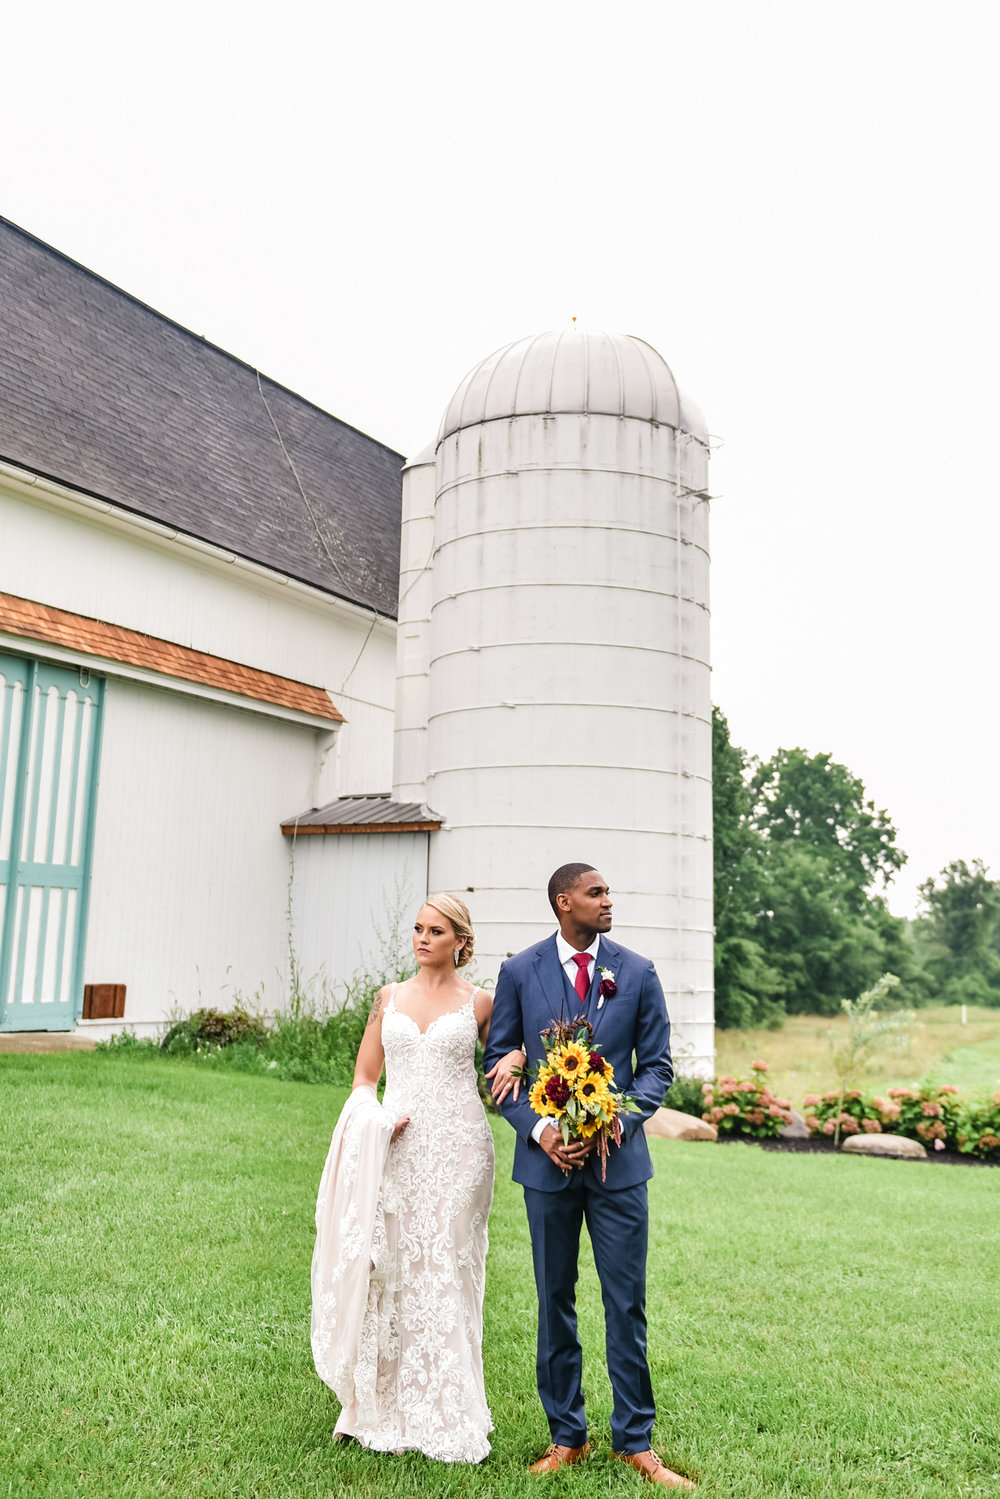 Cobblestone_Wedding_Barn_Rochester_Wedding_JILL_STUDIO_Rochester_NY_Photographer_DSC_7454.jpg